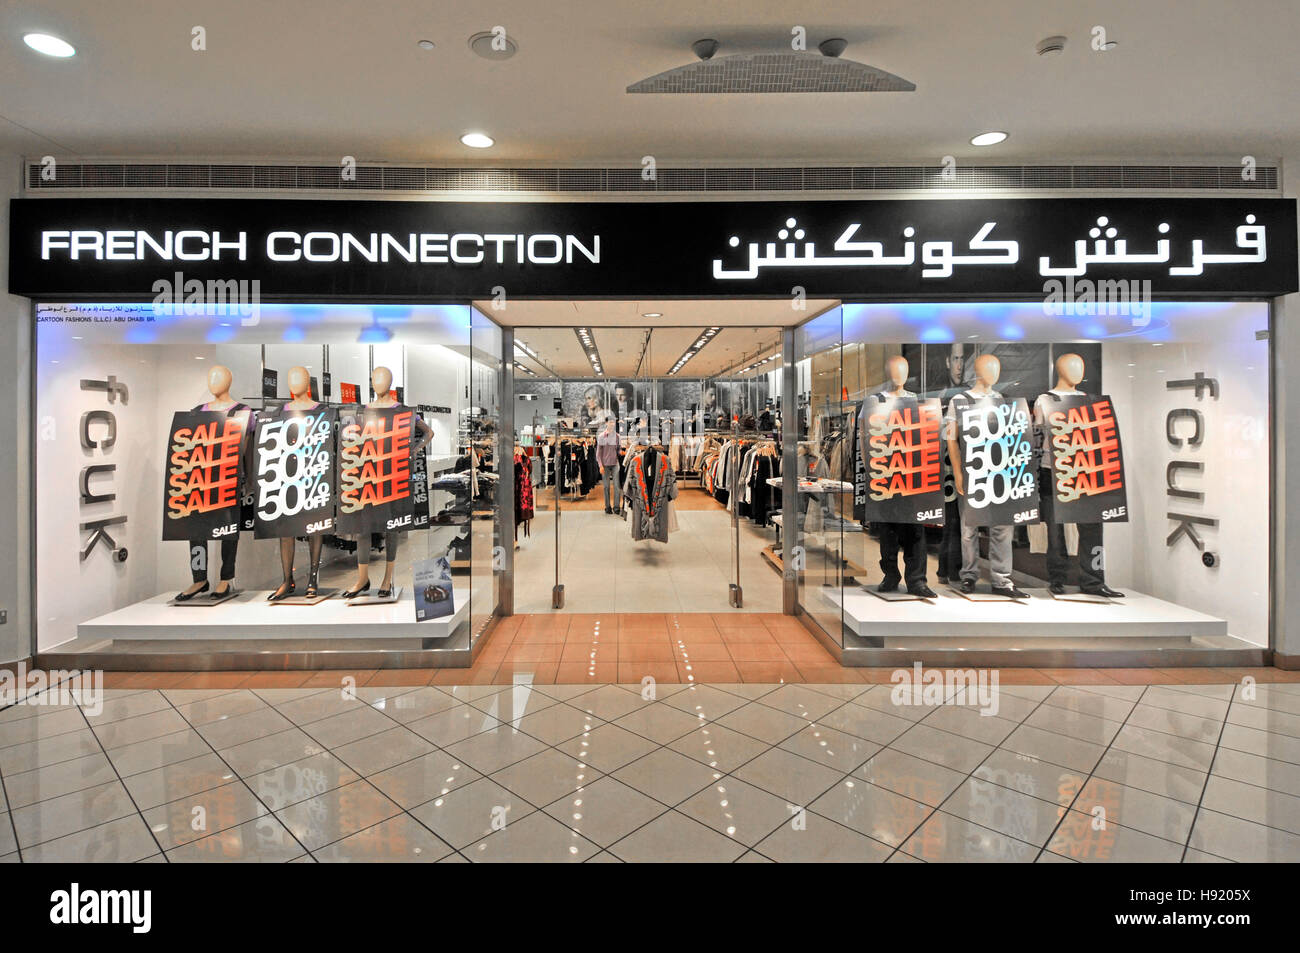 french connection shop abu dhabi uae middle east marina shopping mall stock photo 126048550 alamy. Black Bedroom Furniture Sets. Home Design Ideas